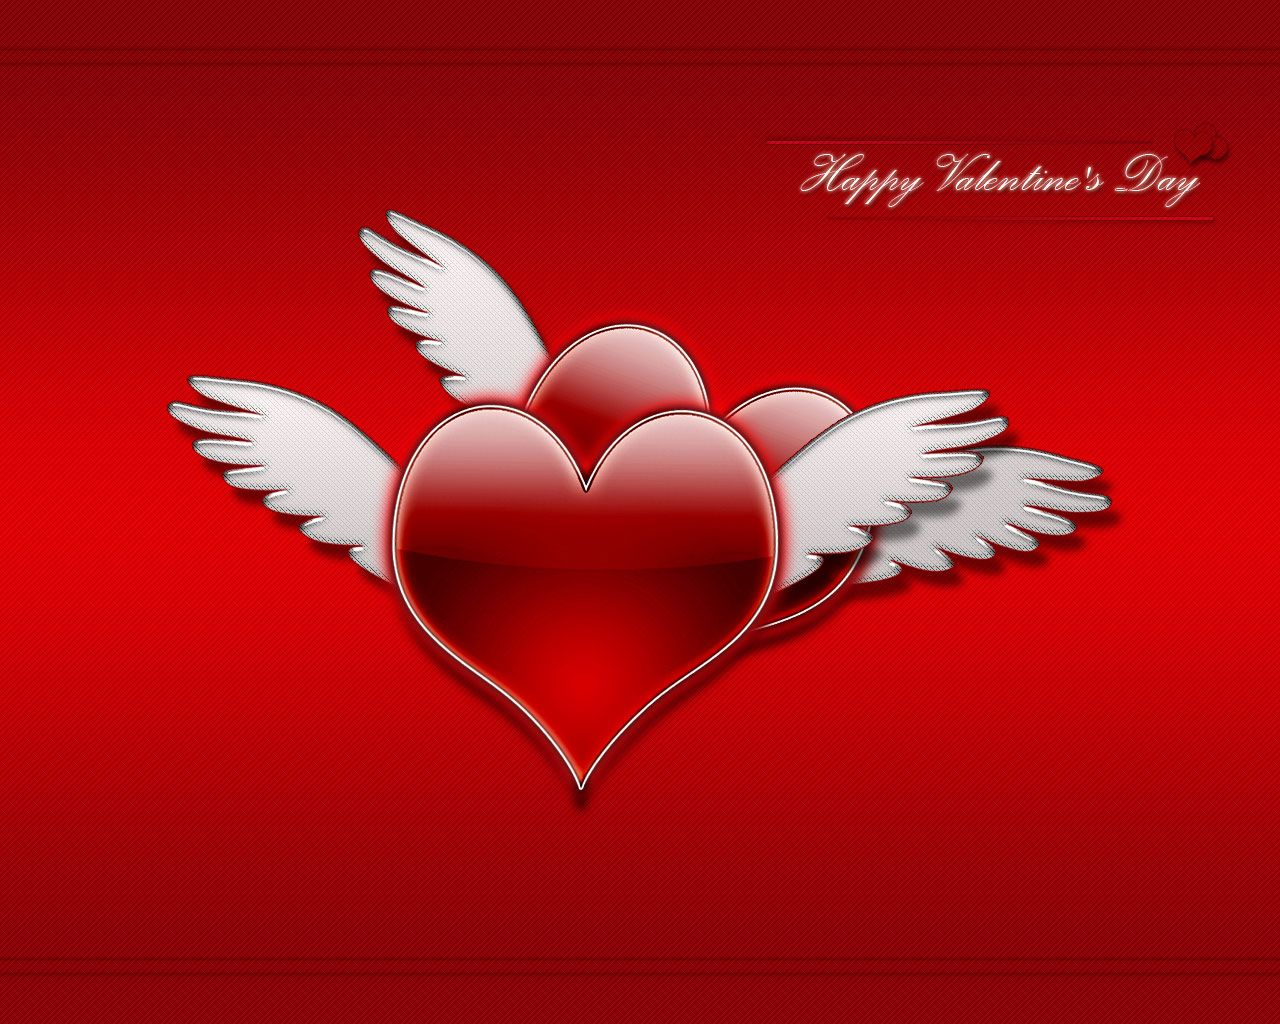 happy valentines day wallpaper 10 happy valentines day wallpaper 11 1280x1024